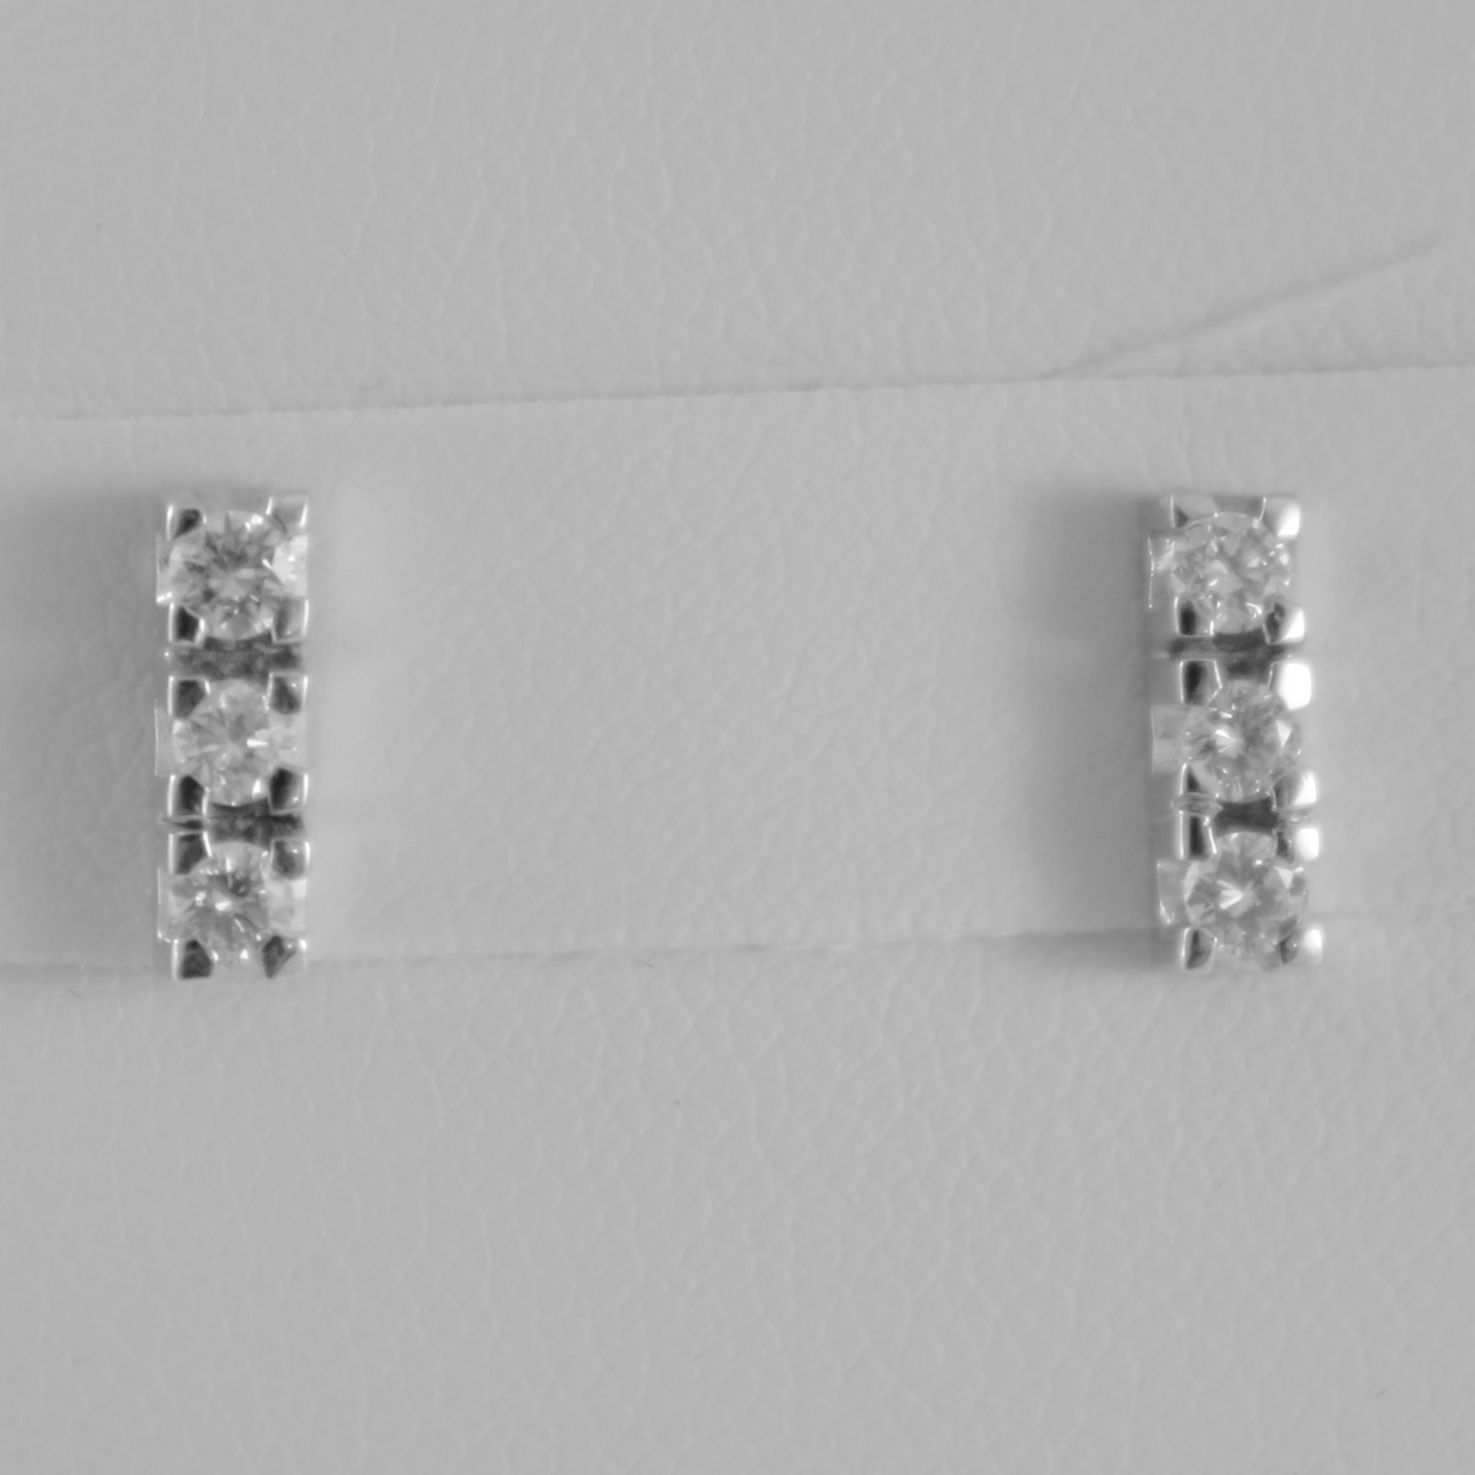 18K WHITE GOLD TRILOGY 9 mm EARRINGS ROUND DIAMONDS 0.30 CARATS, MADE IN ITALY